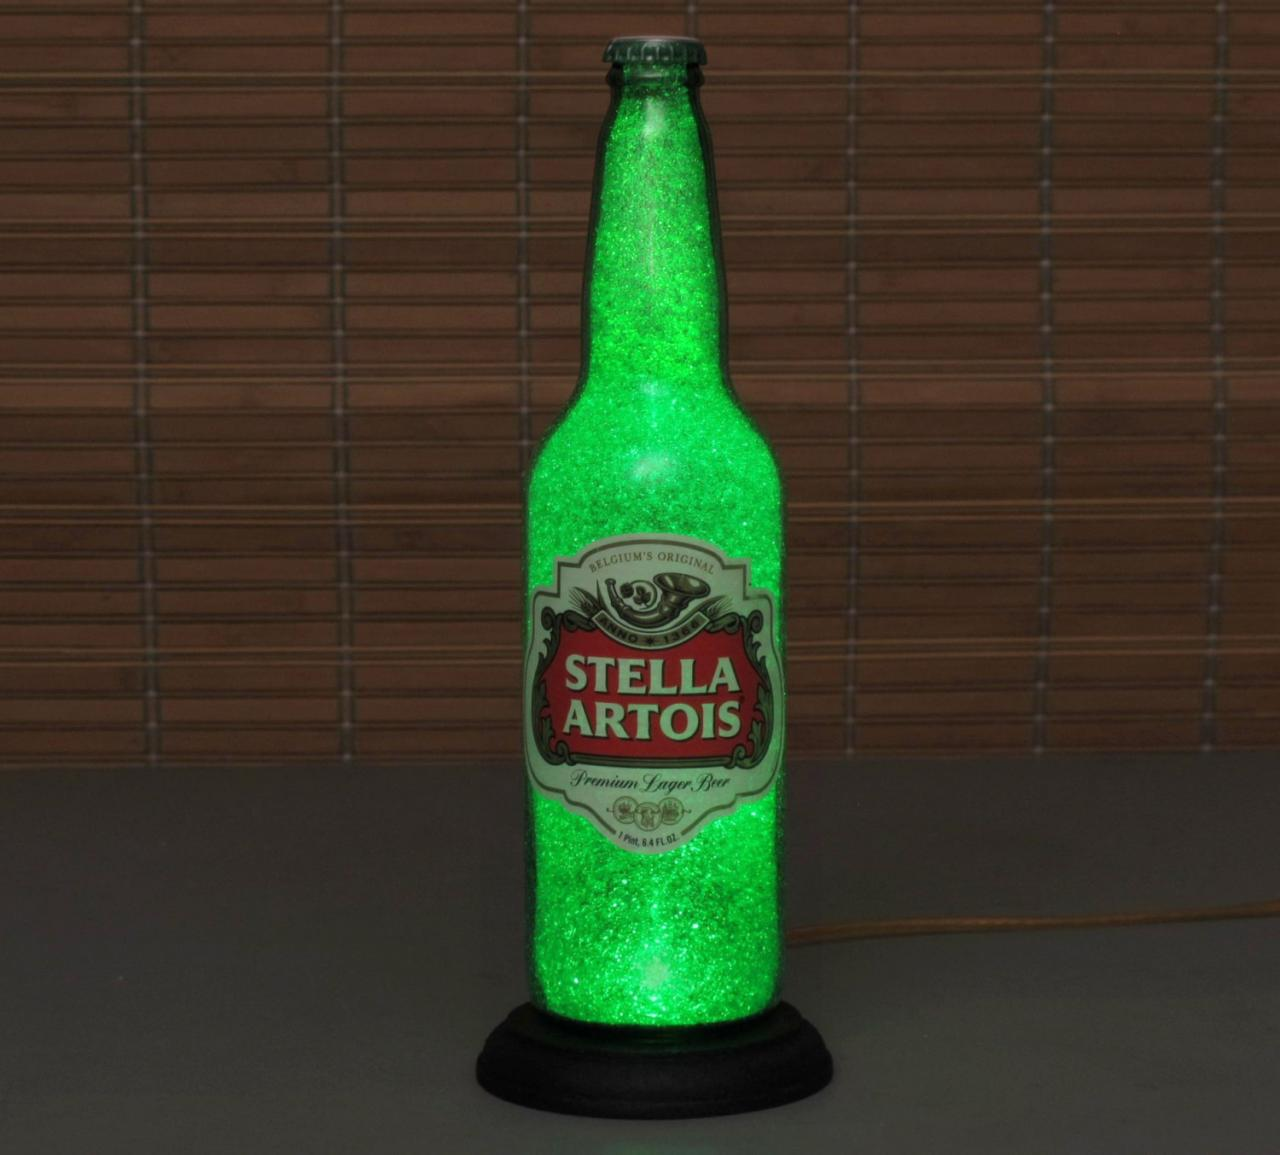 Big 24oz Stella Artois Beer Bottle Lamp Bar Light VIDEO DEMO Intense Sparkle and Glow / 'Diamond Like' Glass Crystals on Inside Surface